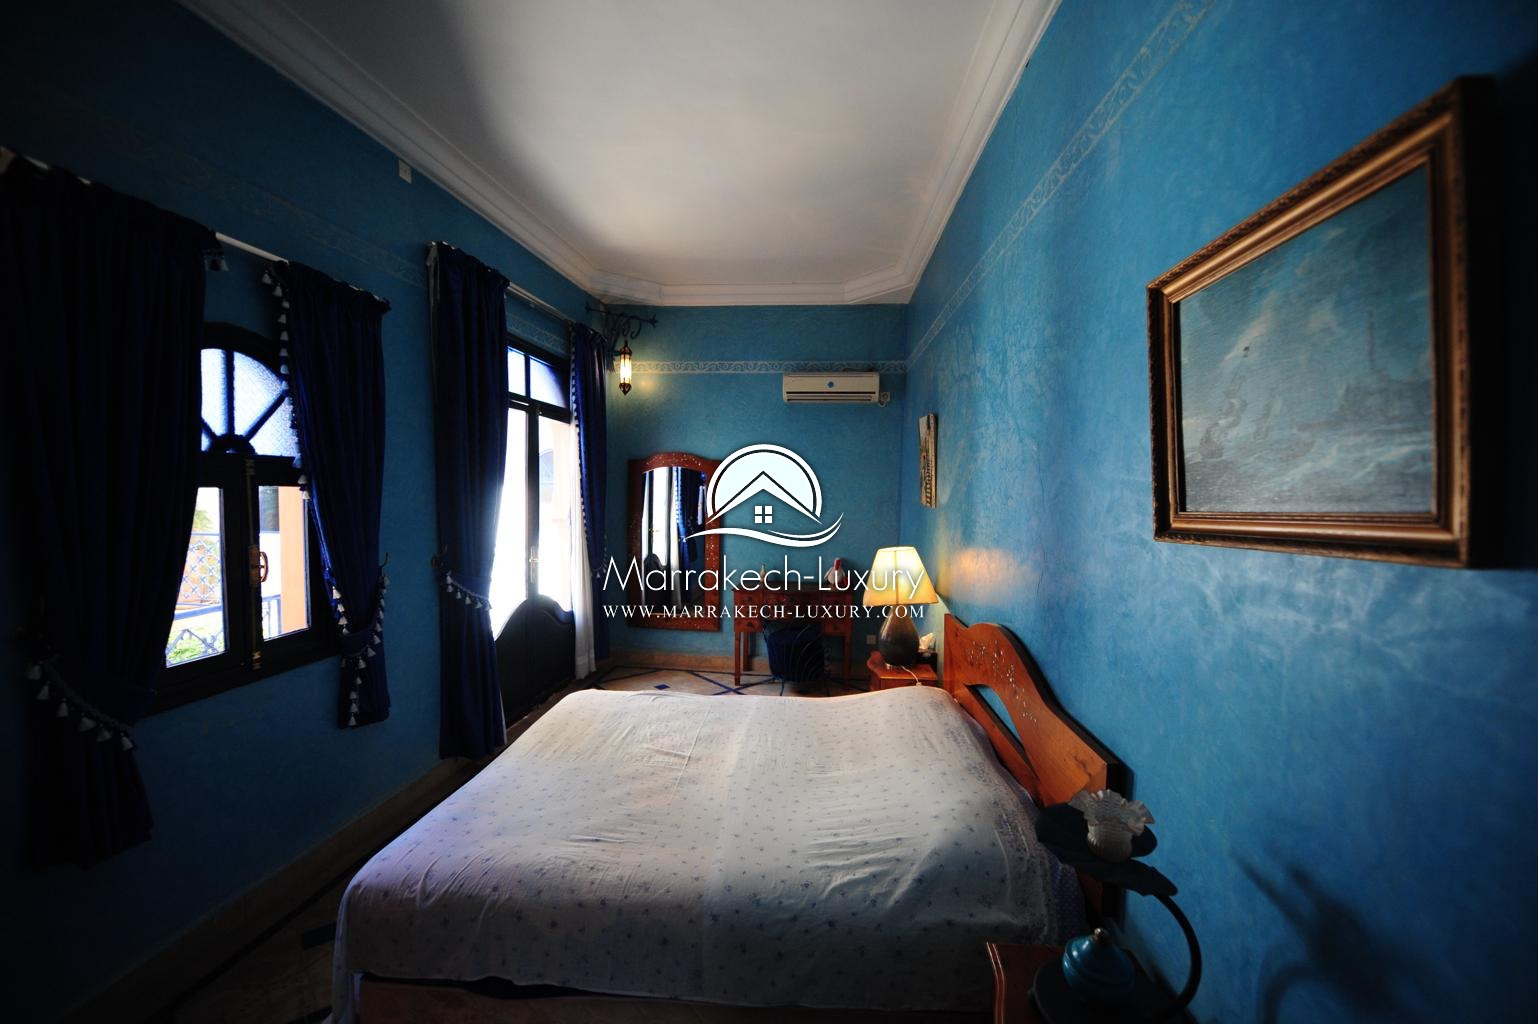 Riaavmed1036ma 37 agence immobili re marrakech acheter for Agence immobiliere 37